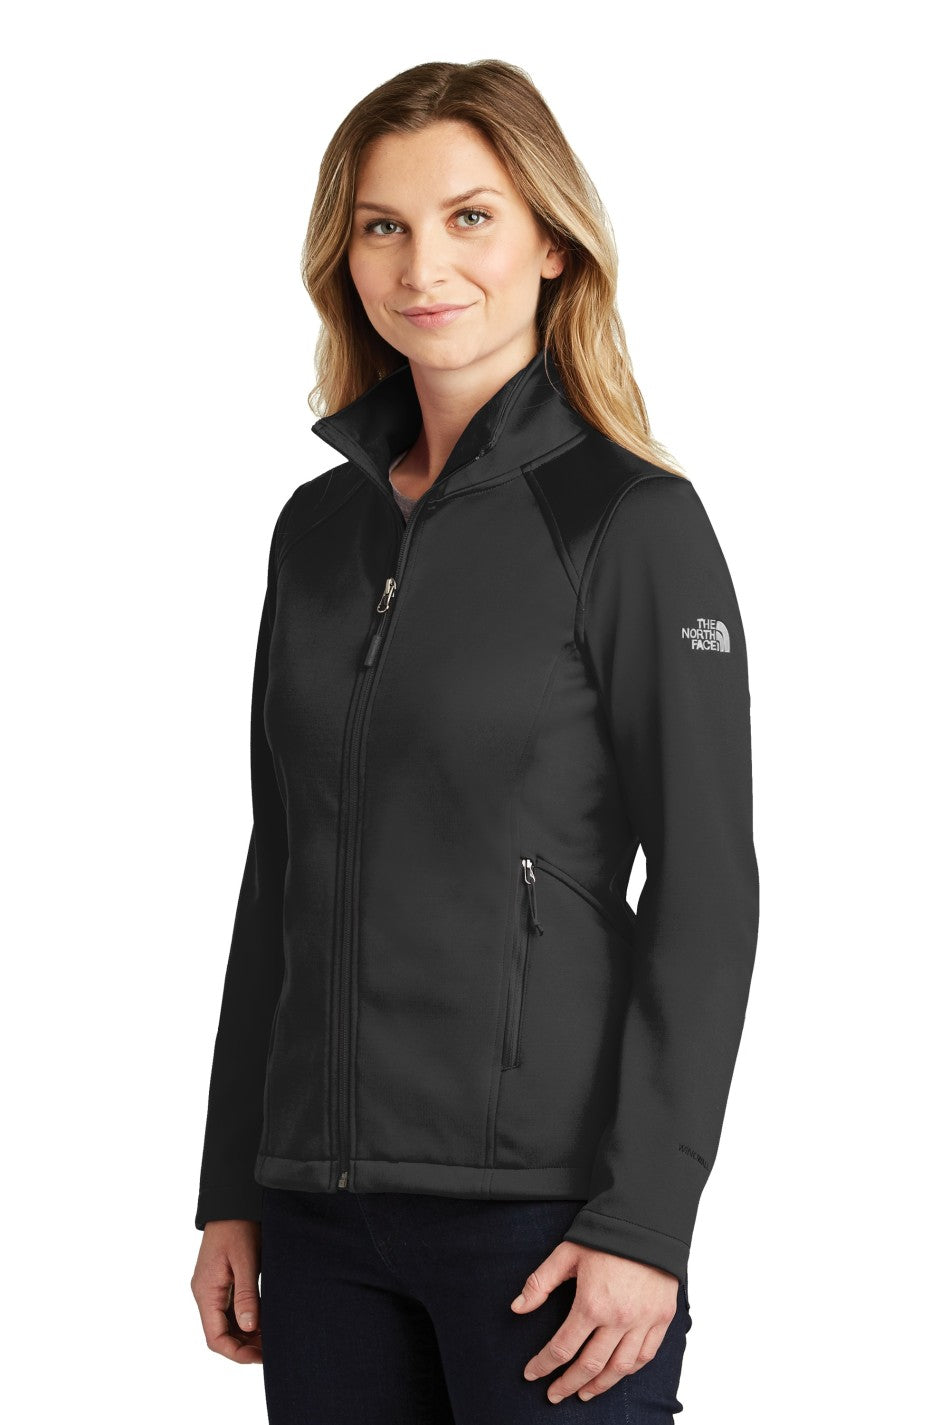 THE NORTH FACE® LADIES RIDGELINE SOFT SHELL JACKET